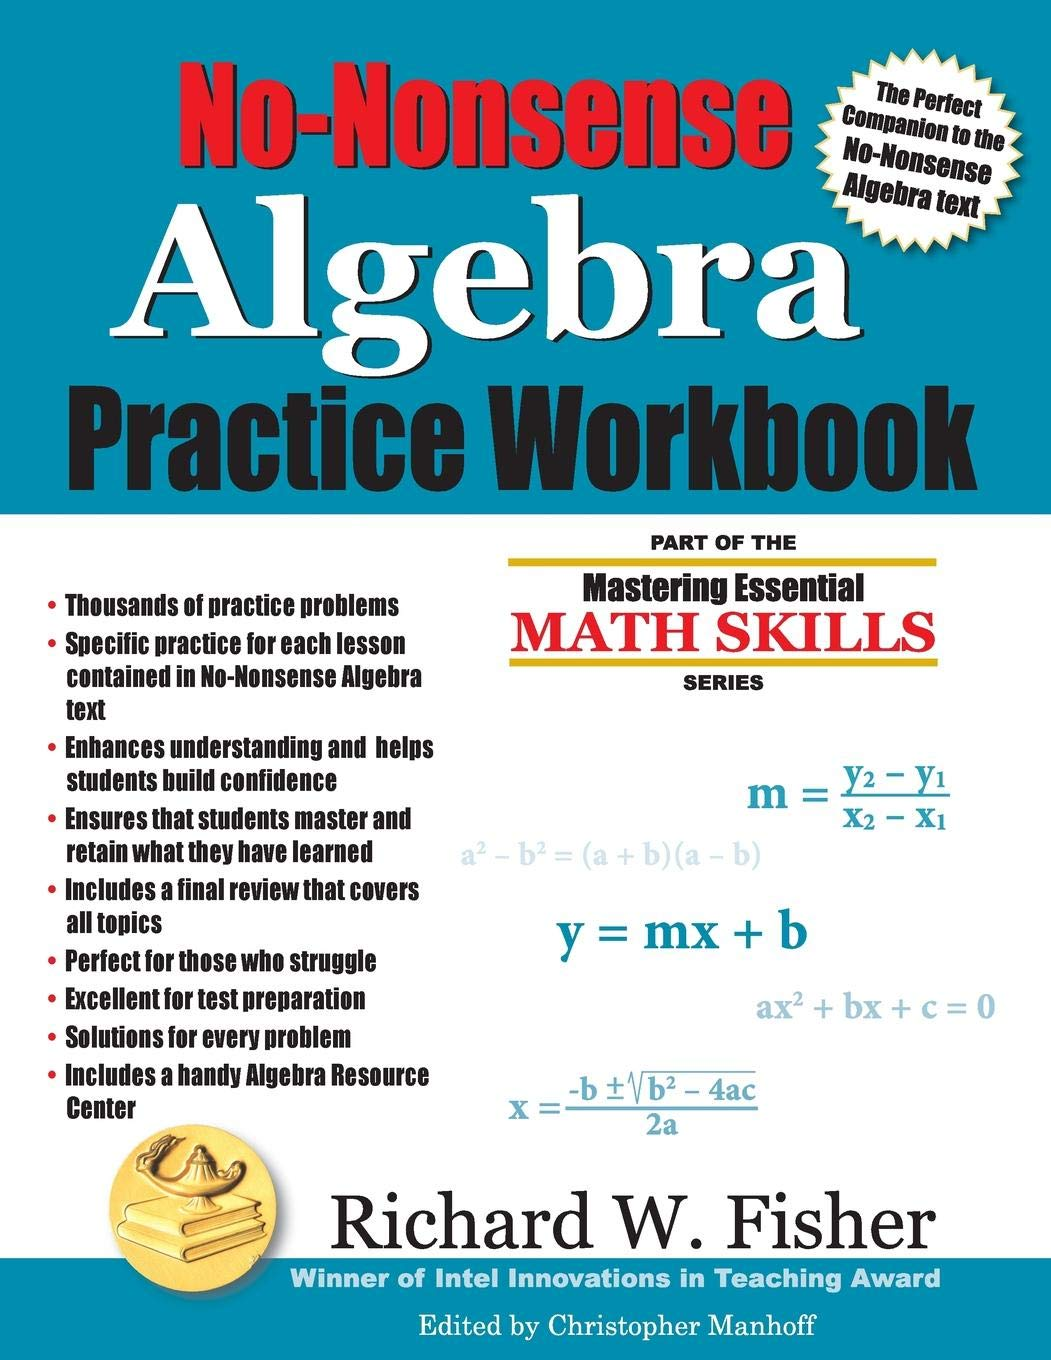 No-Nonsense Algebra Practice Workbook (Mastering Essential Math Skills):  Richard W Fisher: 9780984362943: Amazon.com: Books